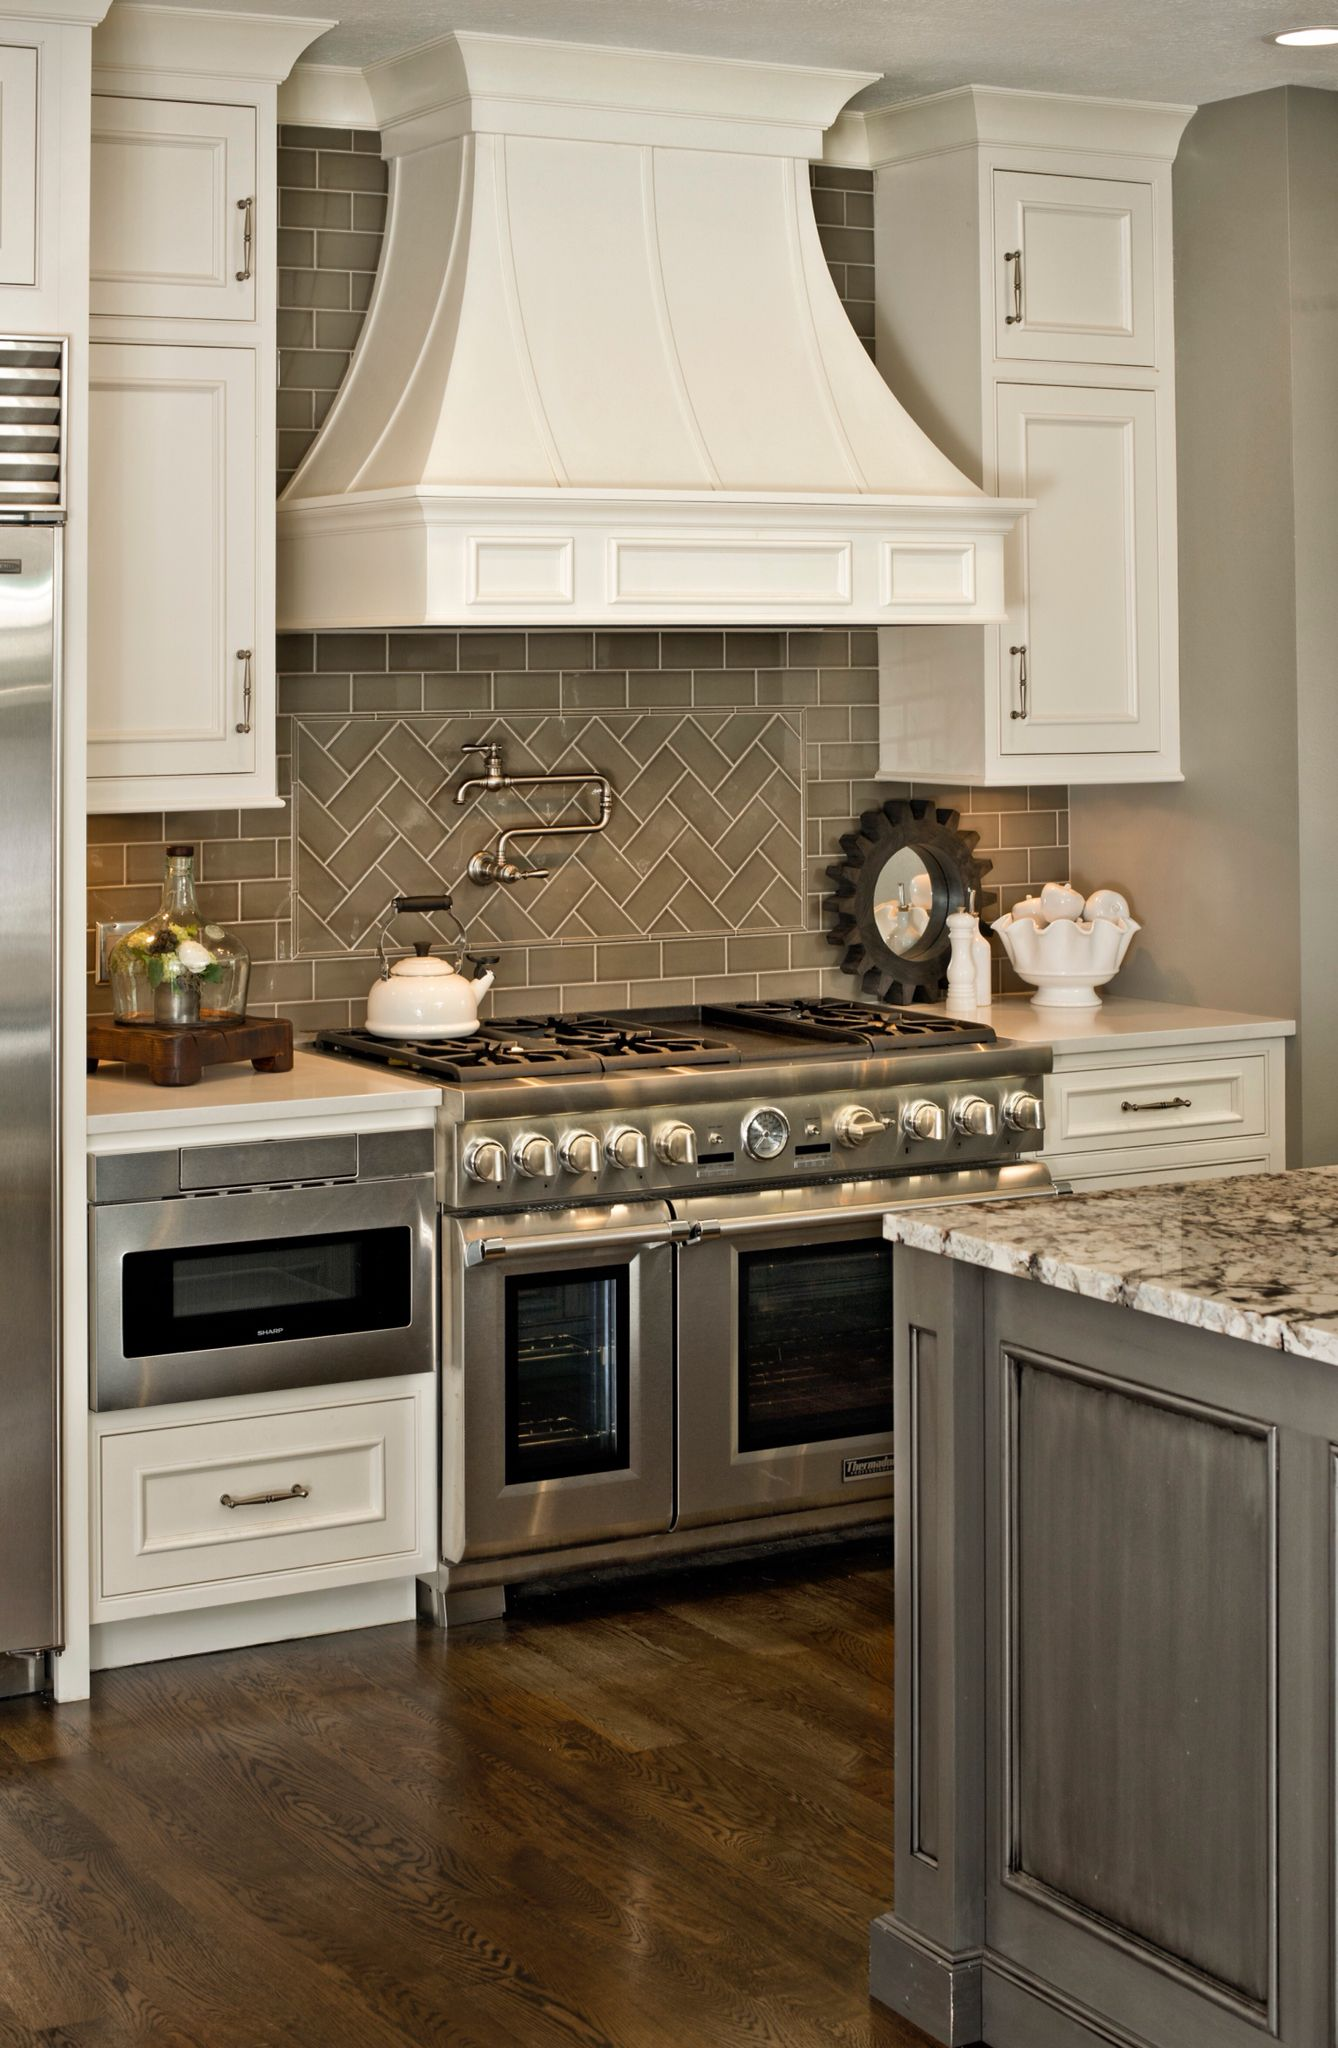 Gray and White Kitchen with Herringbone subway tile backsplash